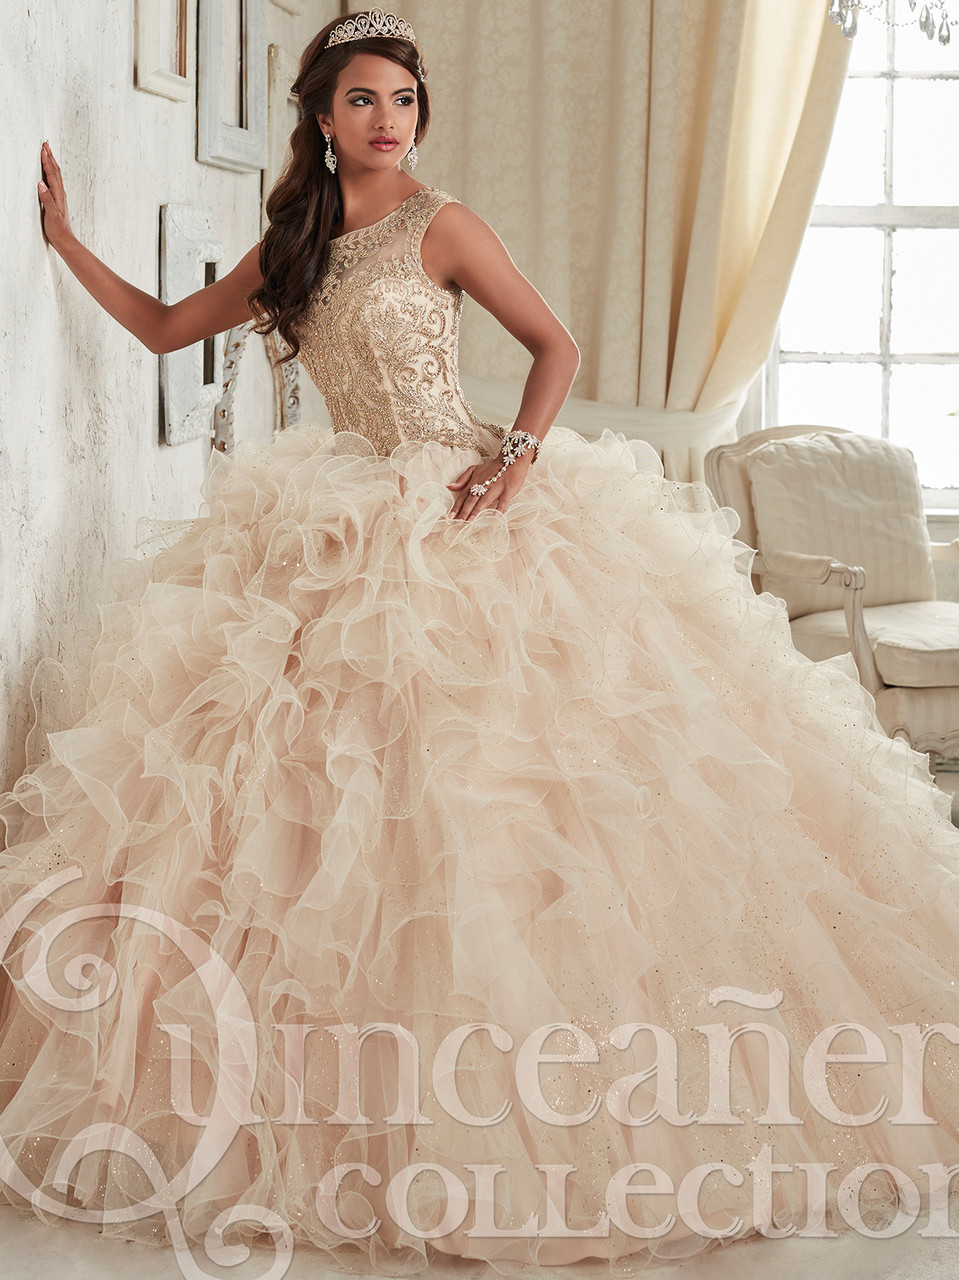 Tiffany Sparkle Tulle Ball Gown Quinceanera Dress 26835